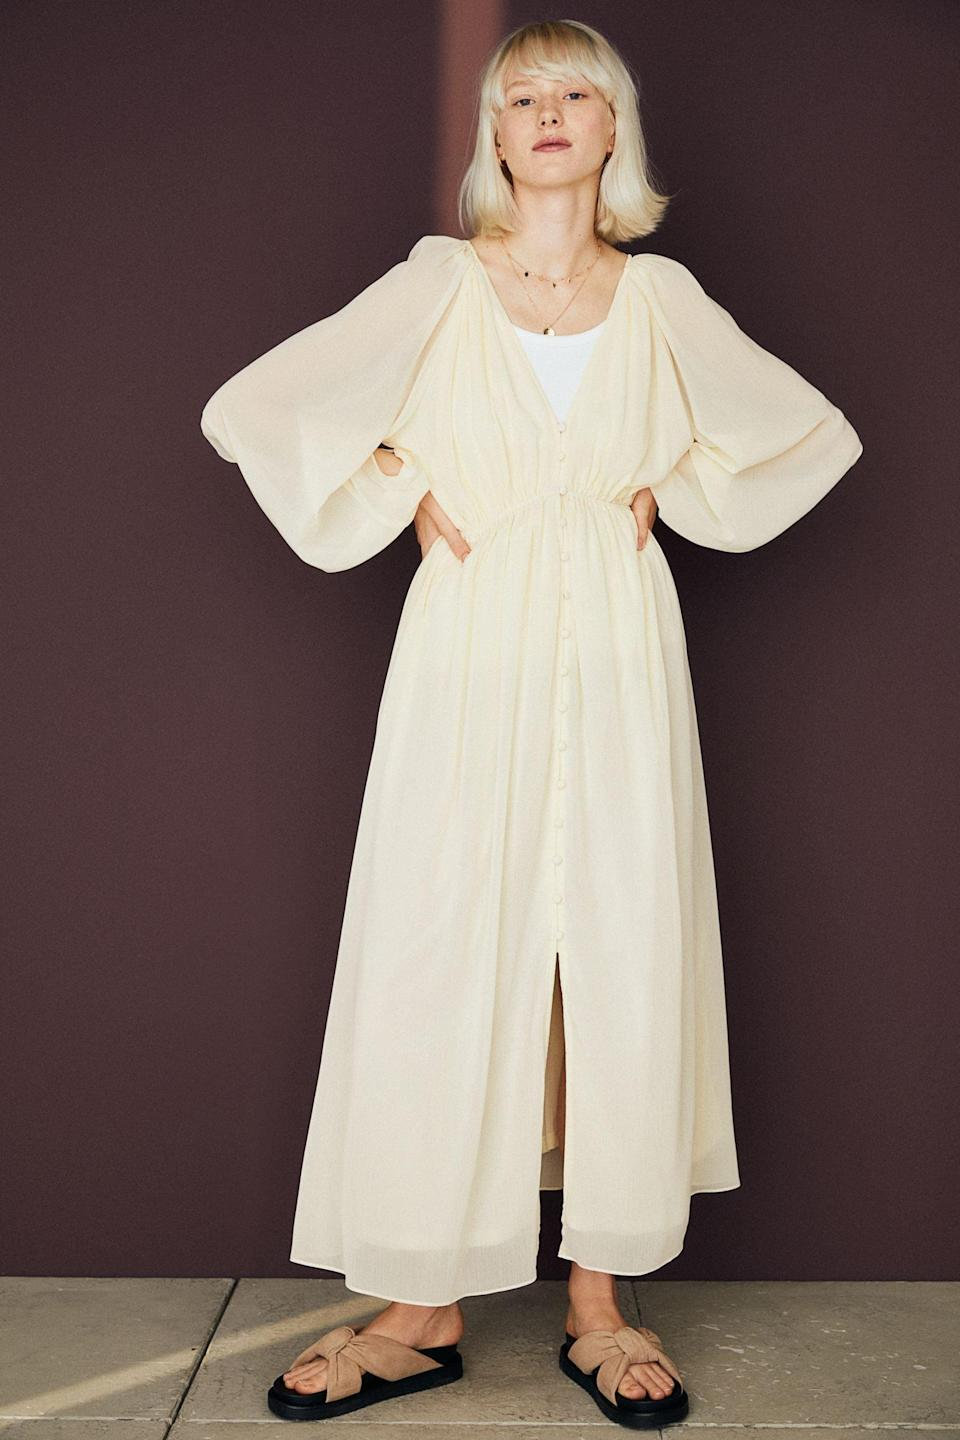 <p>This <span>Long Chiffon Dress</span> ($50) pairs well with spontaneous dinner plans. The crinkled chiffon fabric looks relaxed but elevated, while the balloon sleeves add drama in the best possible way.</p>